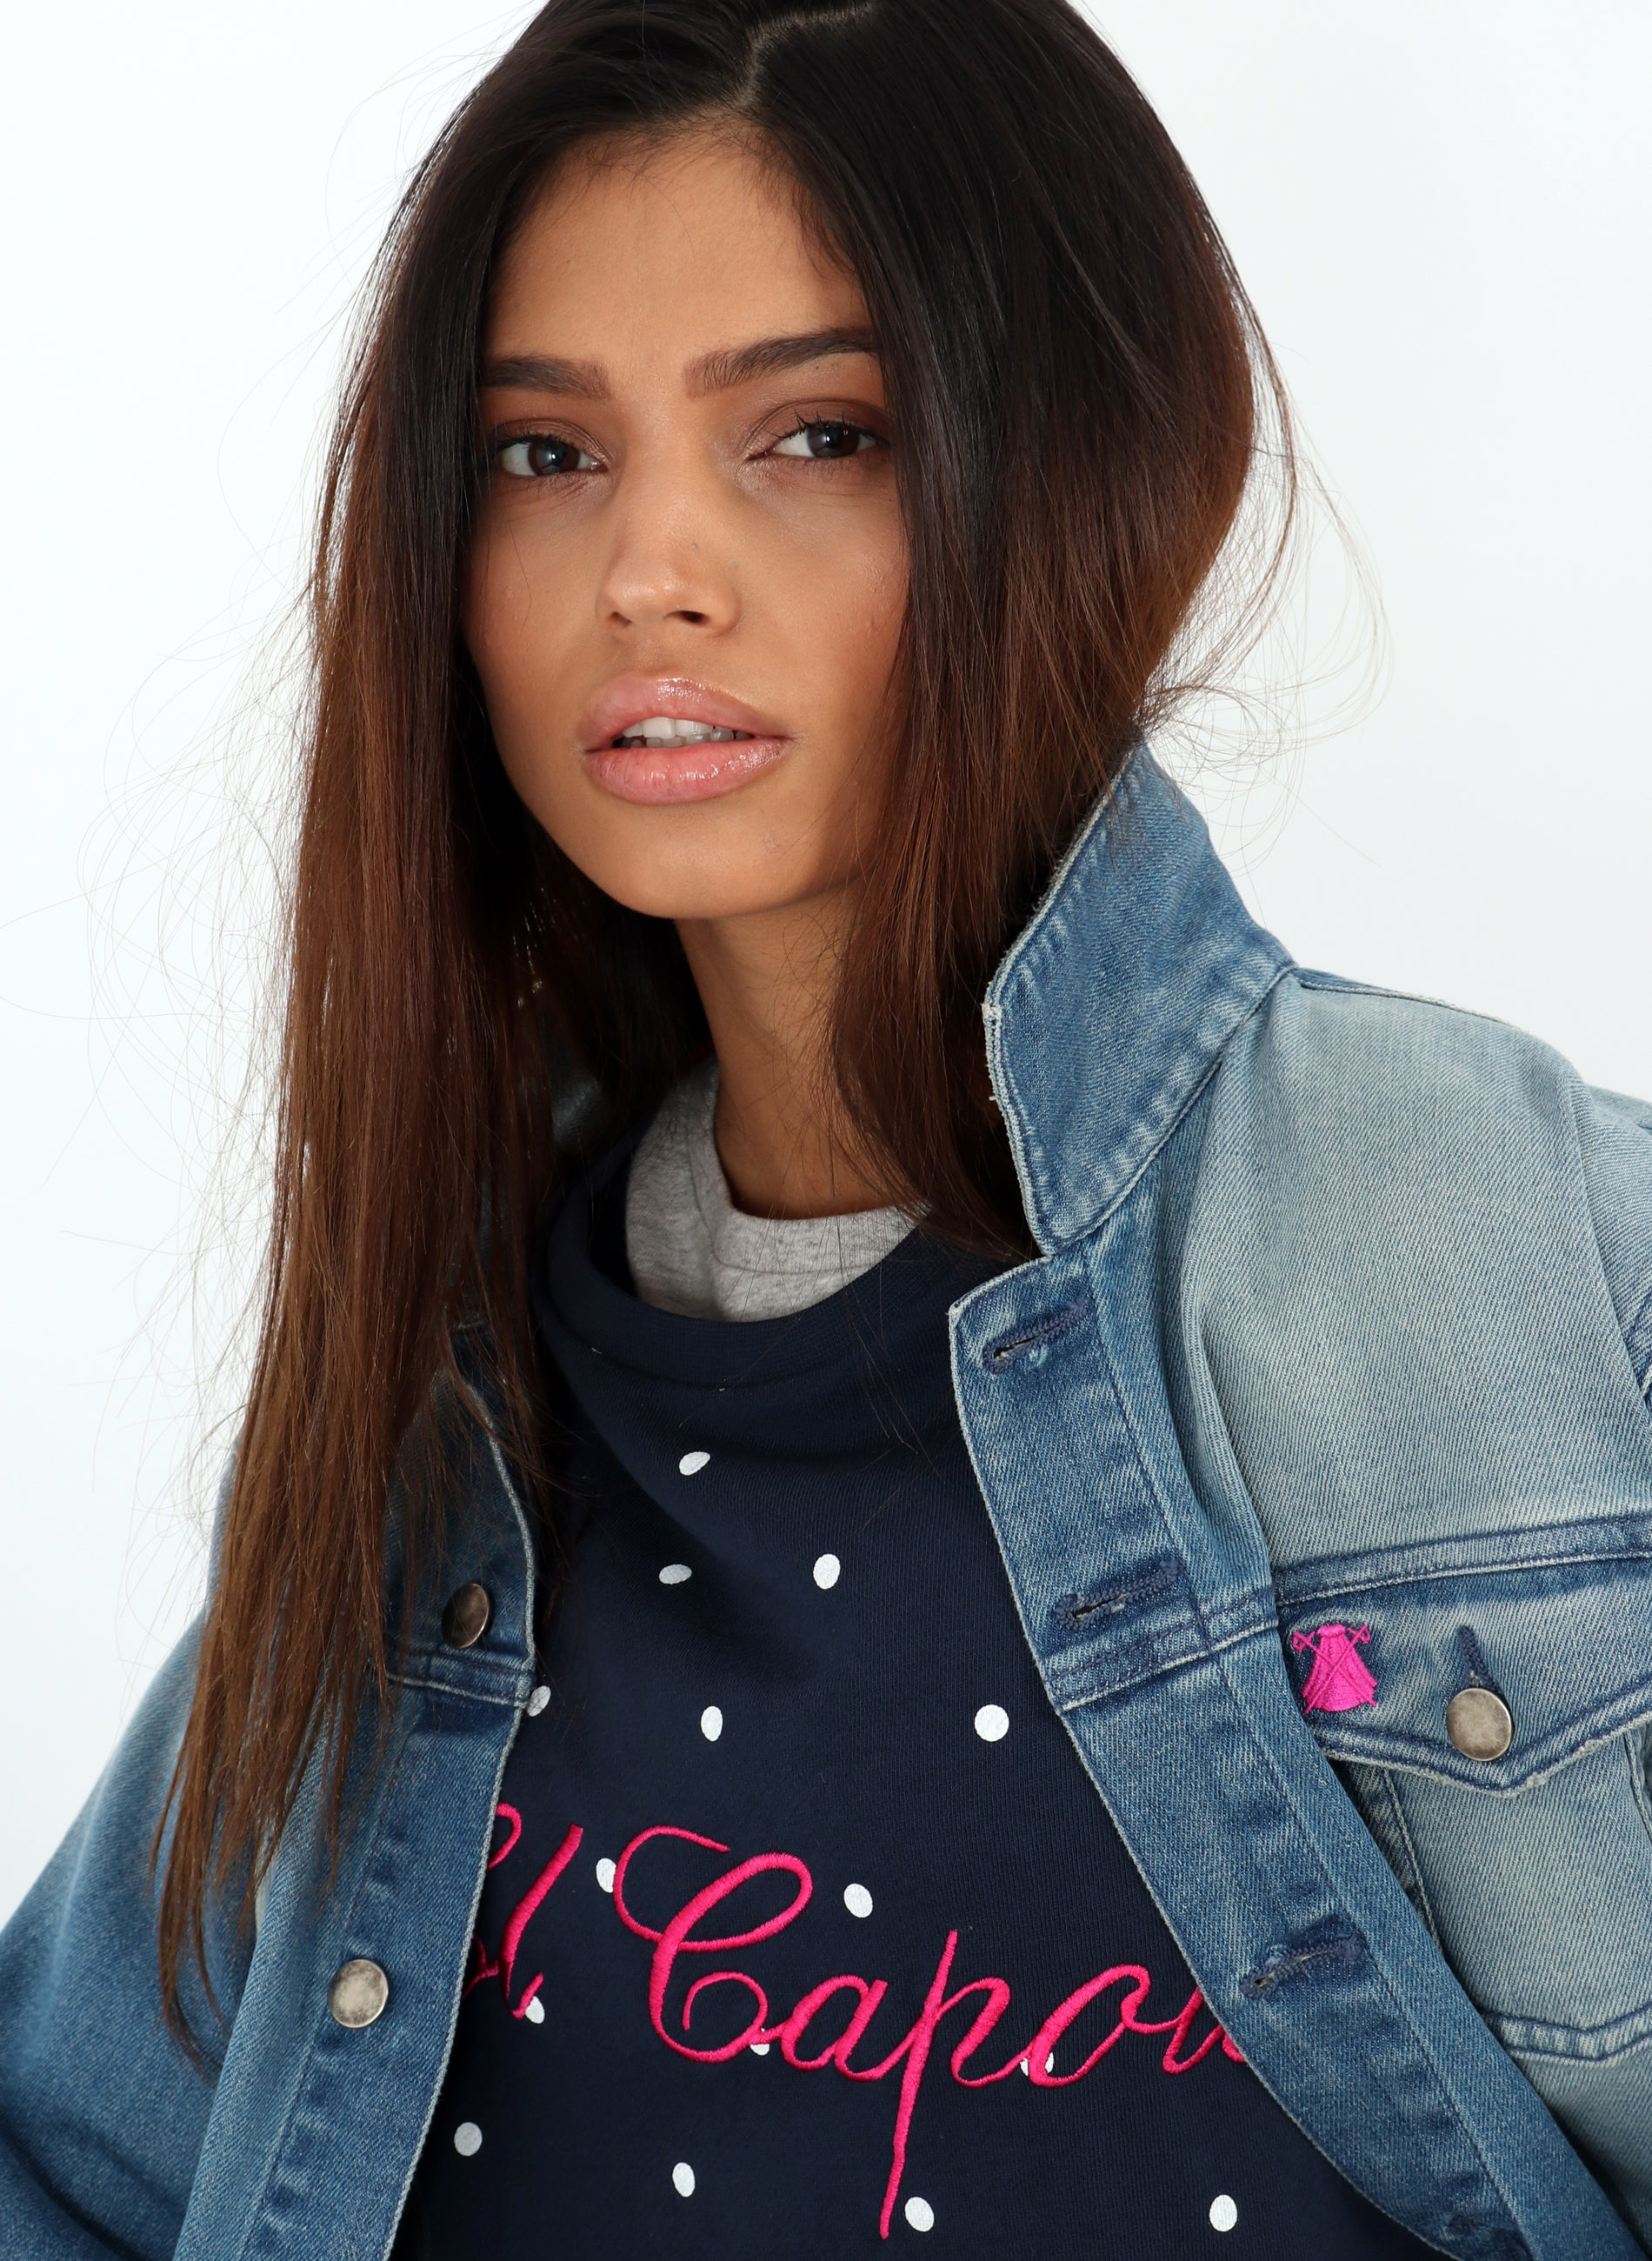 Blue Polka Dot Sweatshirt Woman